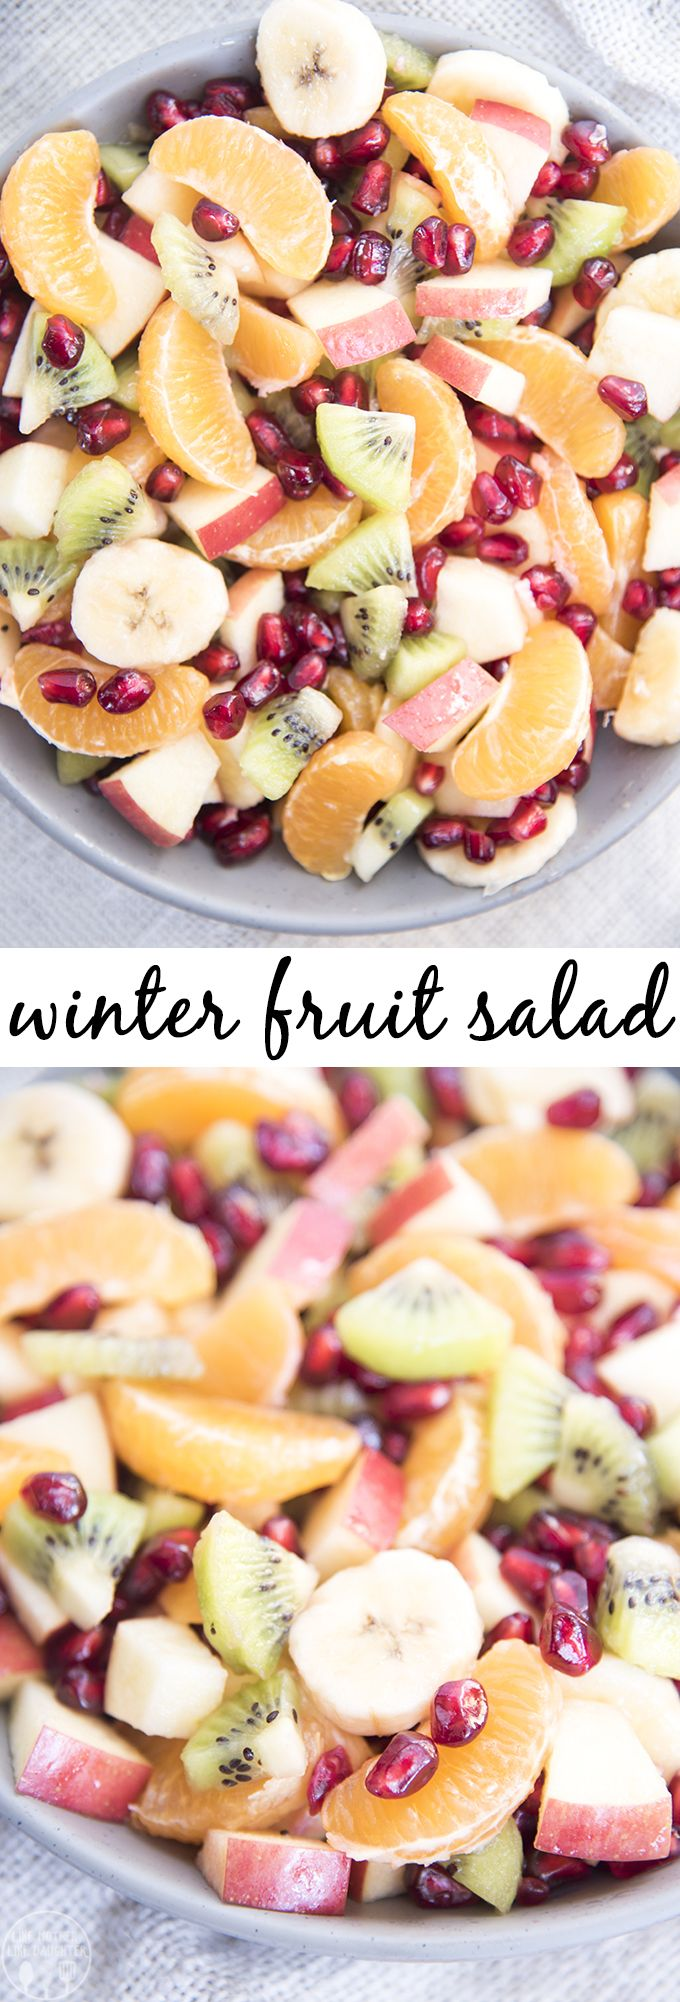 Winter Fruit Salad - This simple fruit salad is loaded full of winter fruits, and is perfect for a holiday party or dinner side dish.